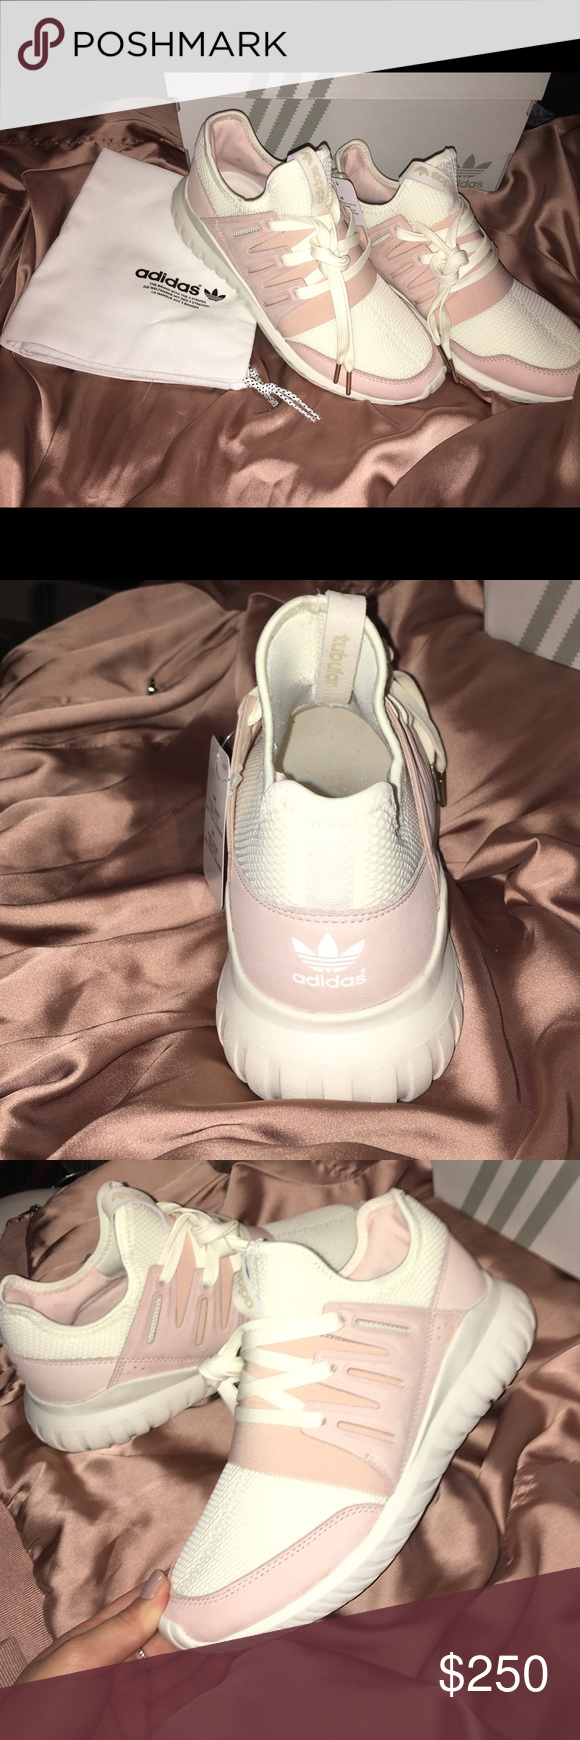 adidas shoes for boys size 35 adidas shoes for women rose gold